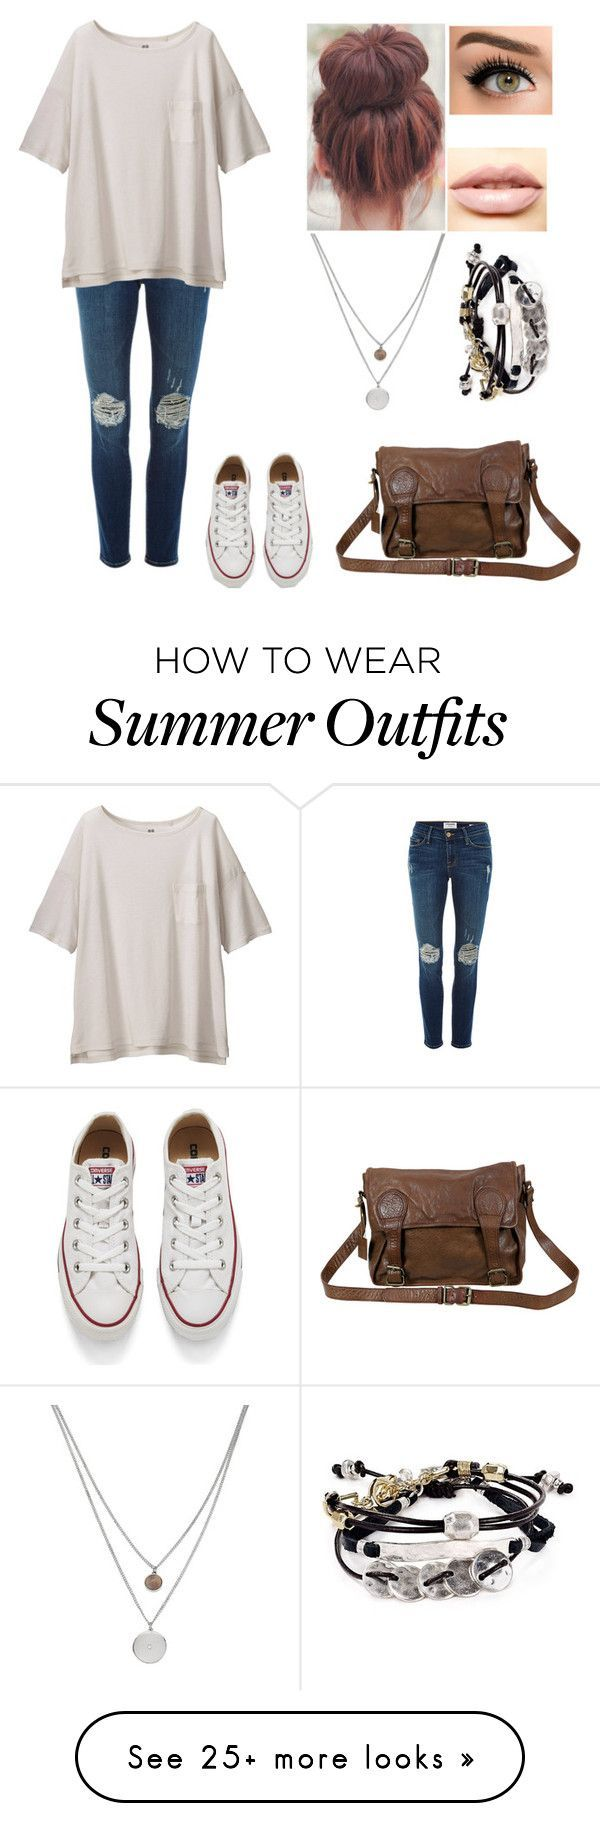 9 cute summer outfits for school